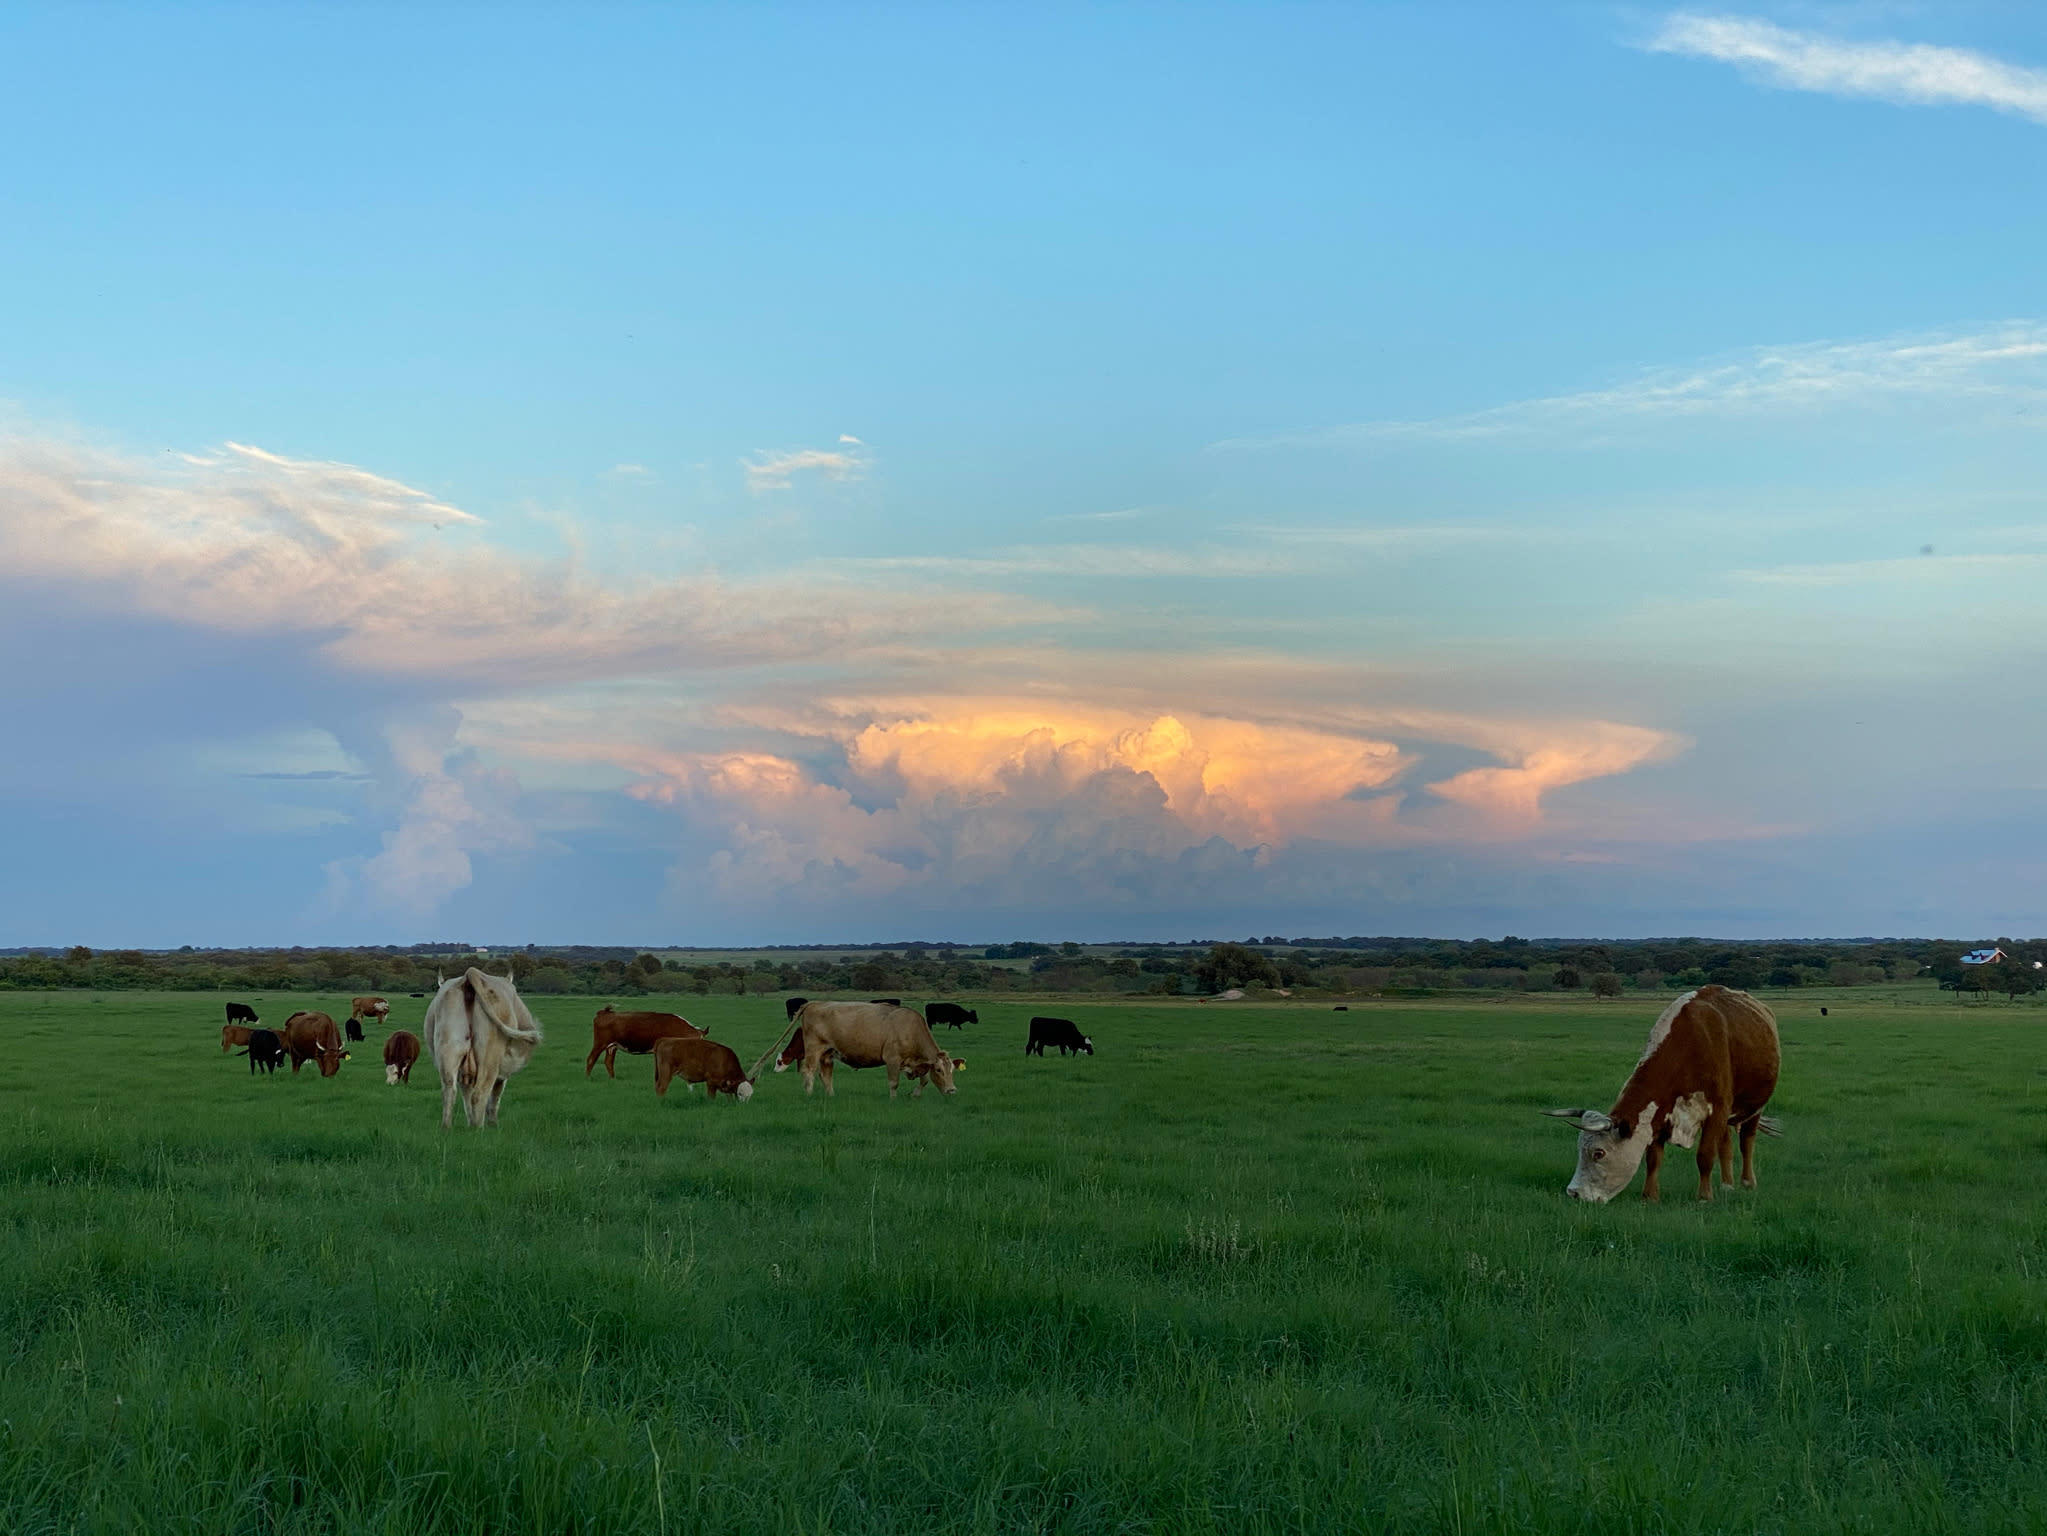 sunrise pretty clouds pasture and cows